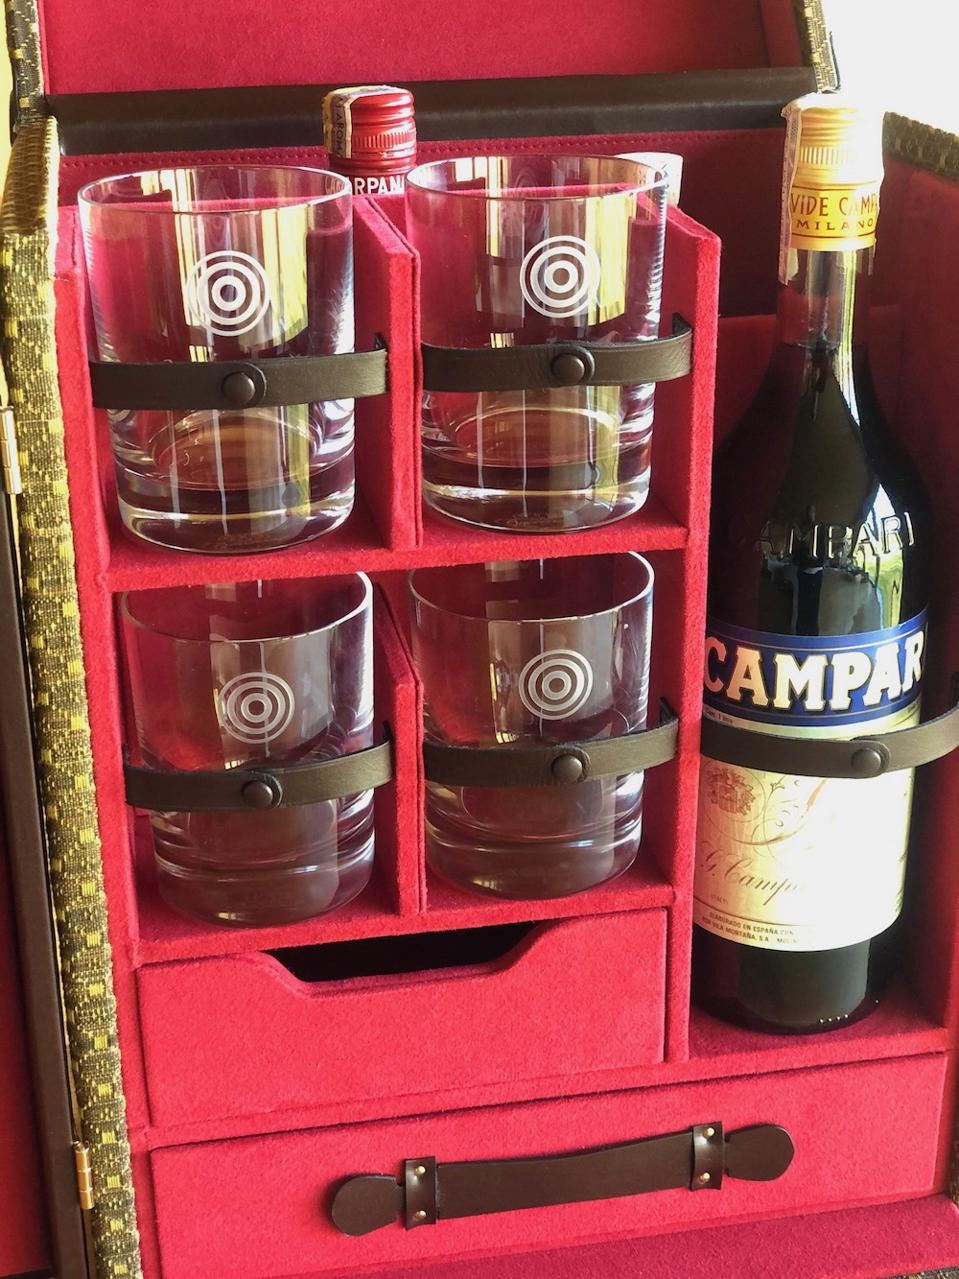 Baccarat made WM Brown branded glasses for the Negroni Trunk